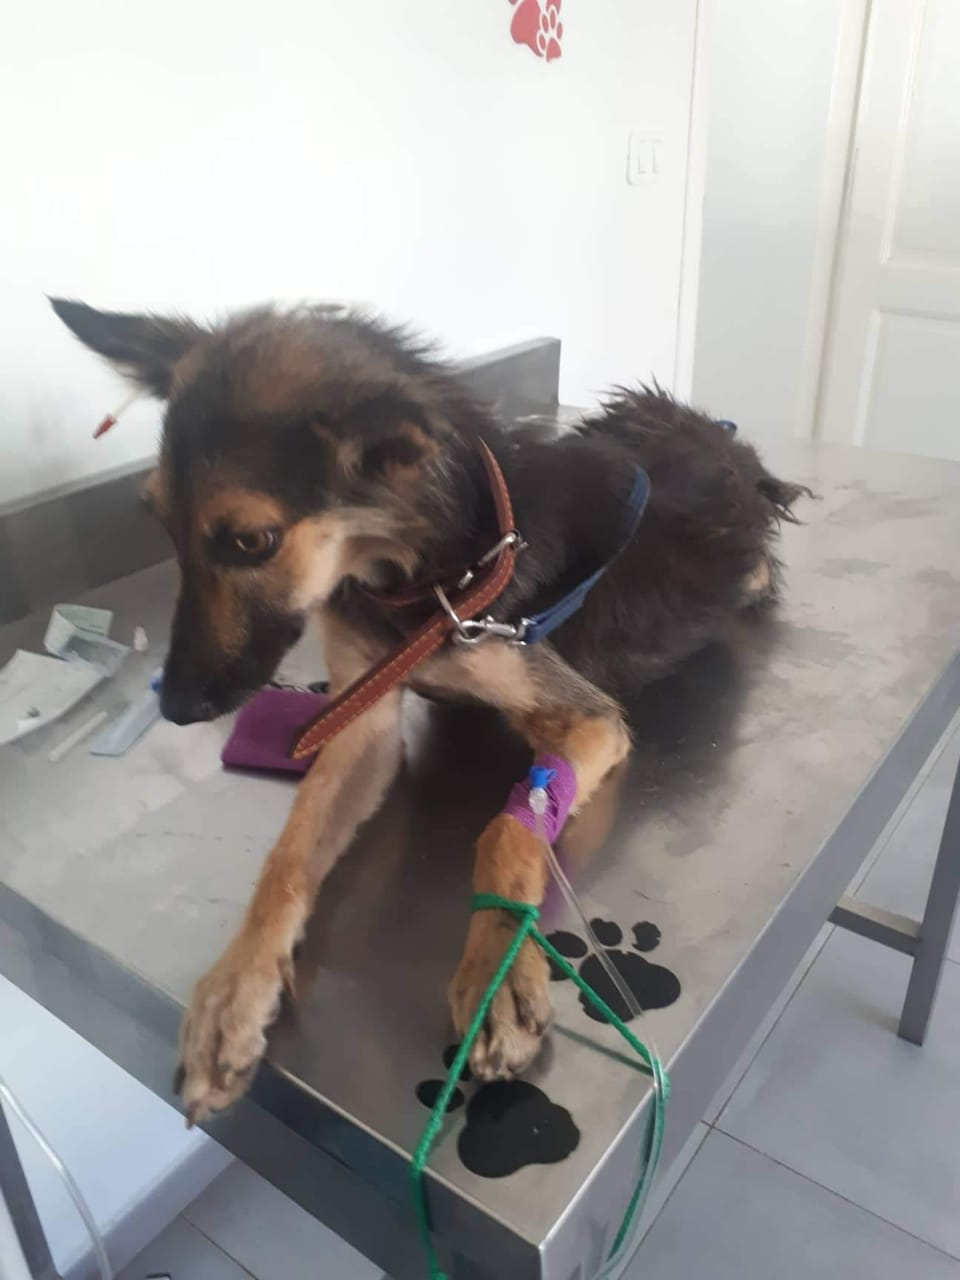 RESCUING INJURED DOGS IN TUNISIA